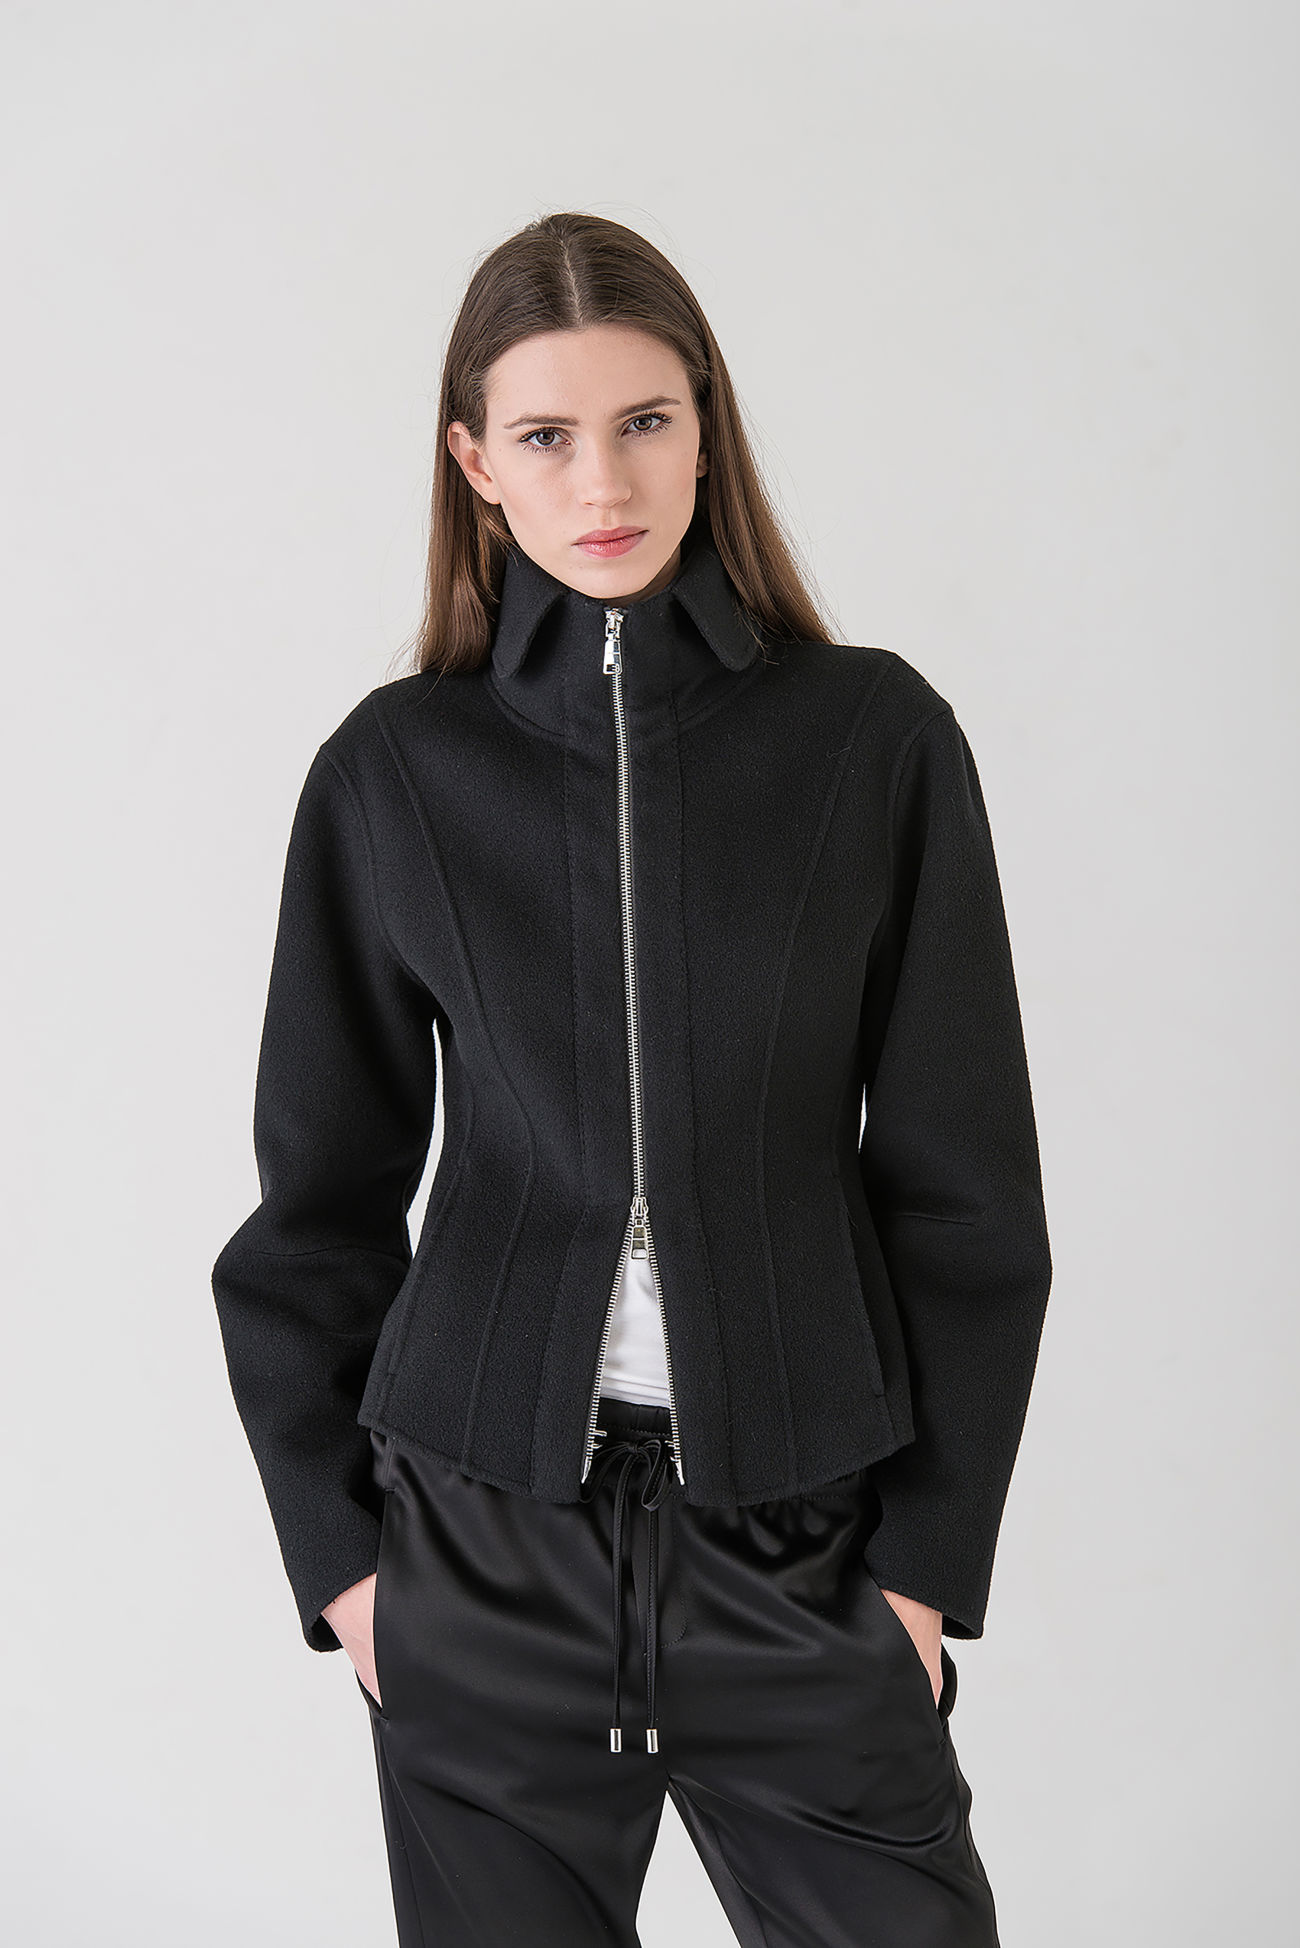 Jacket in double face wool-cashmere